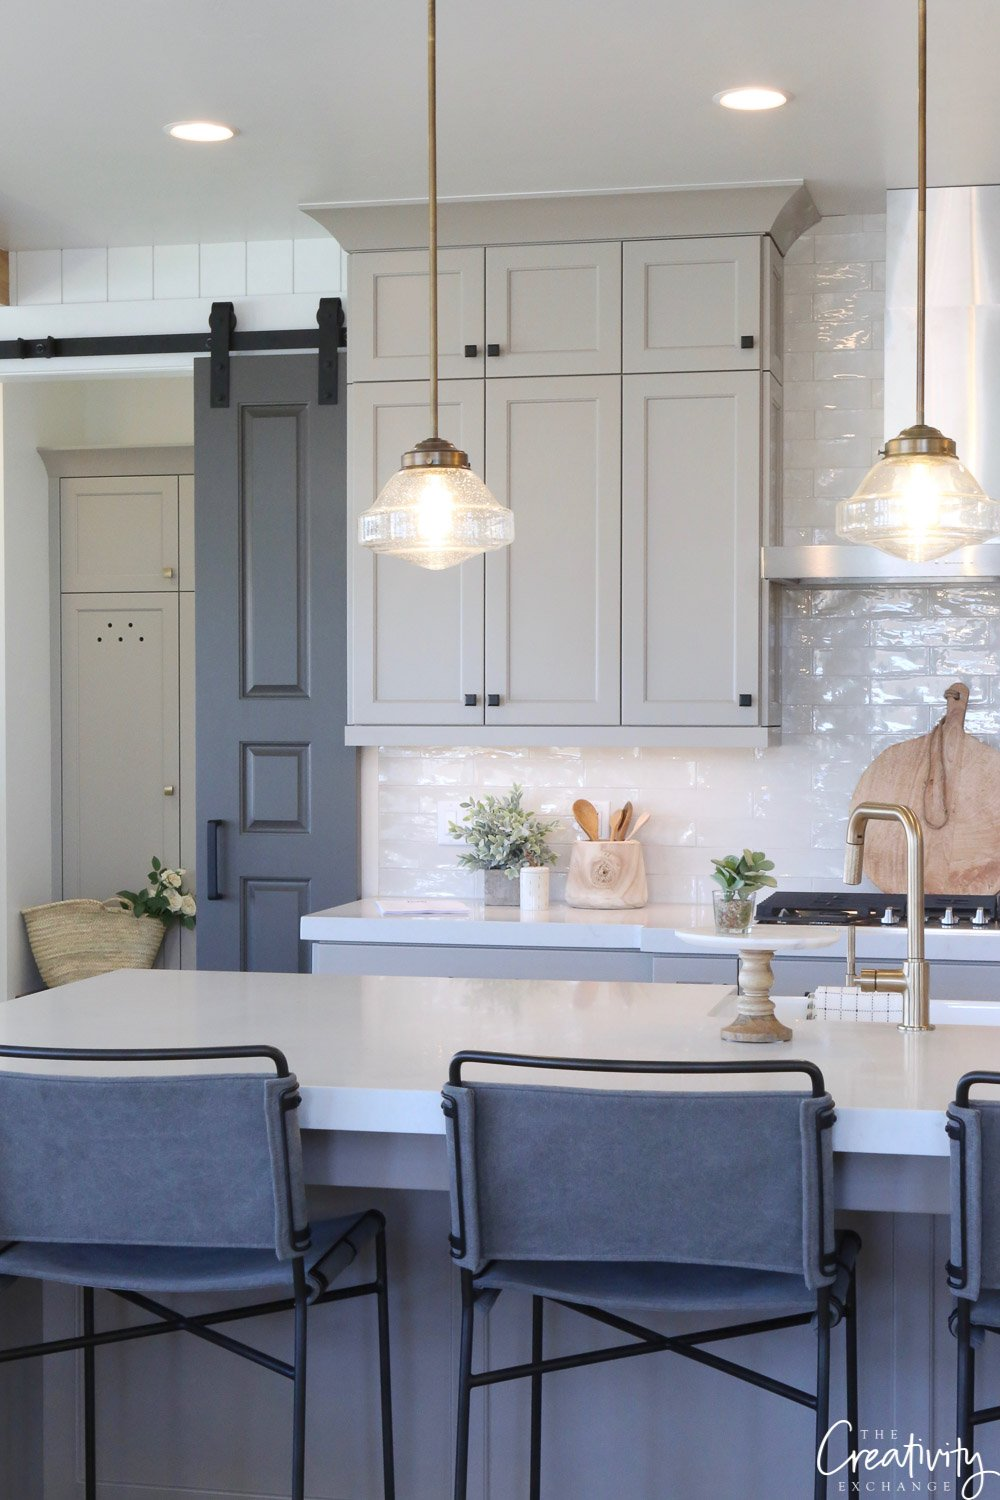 Cabinet Paint Color is Benjamin Moore Fieldstone